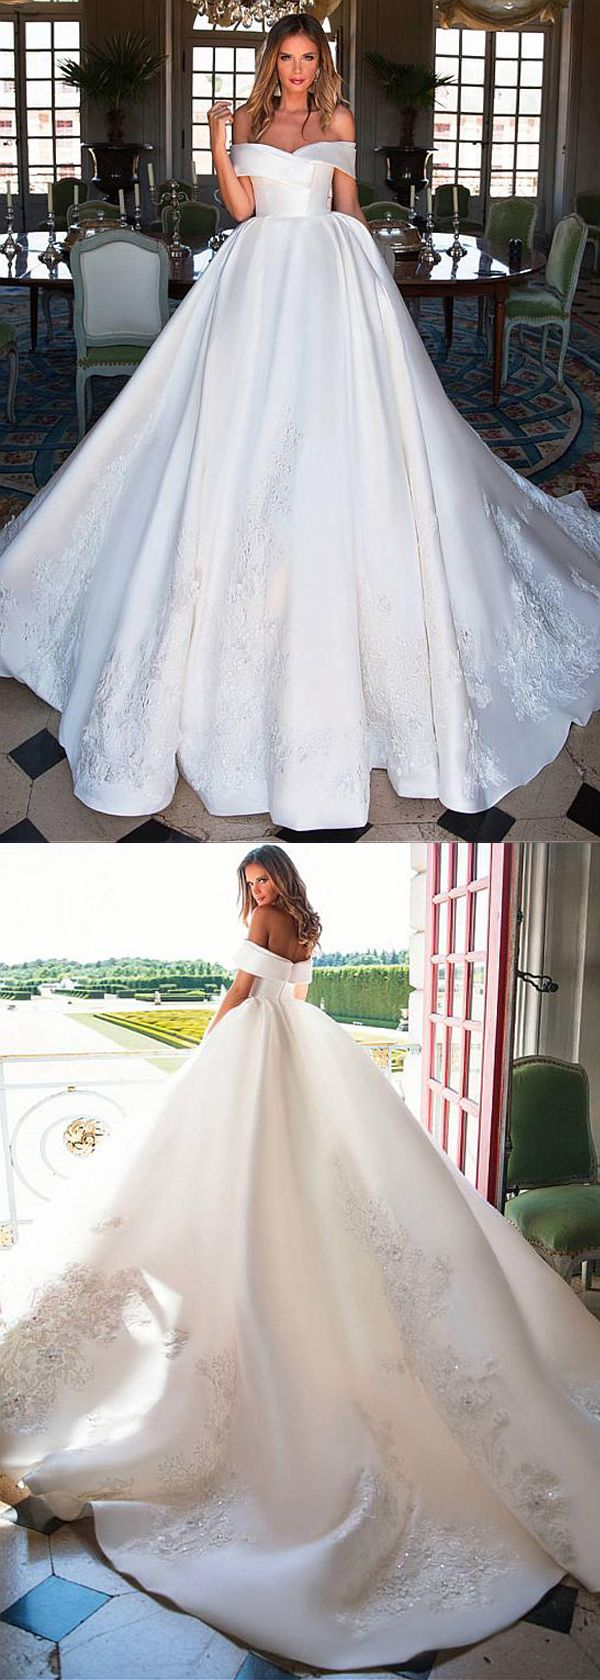 Fascinating Satin Off-the-shoulder Neckline Ball Gown Wedding Dress With Lace Appliques & 3D Flowers & Beadings